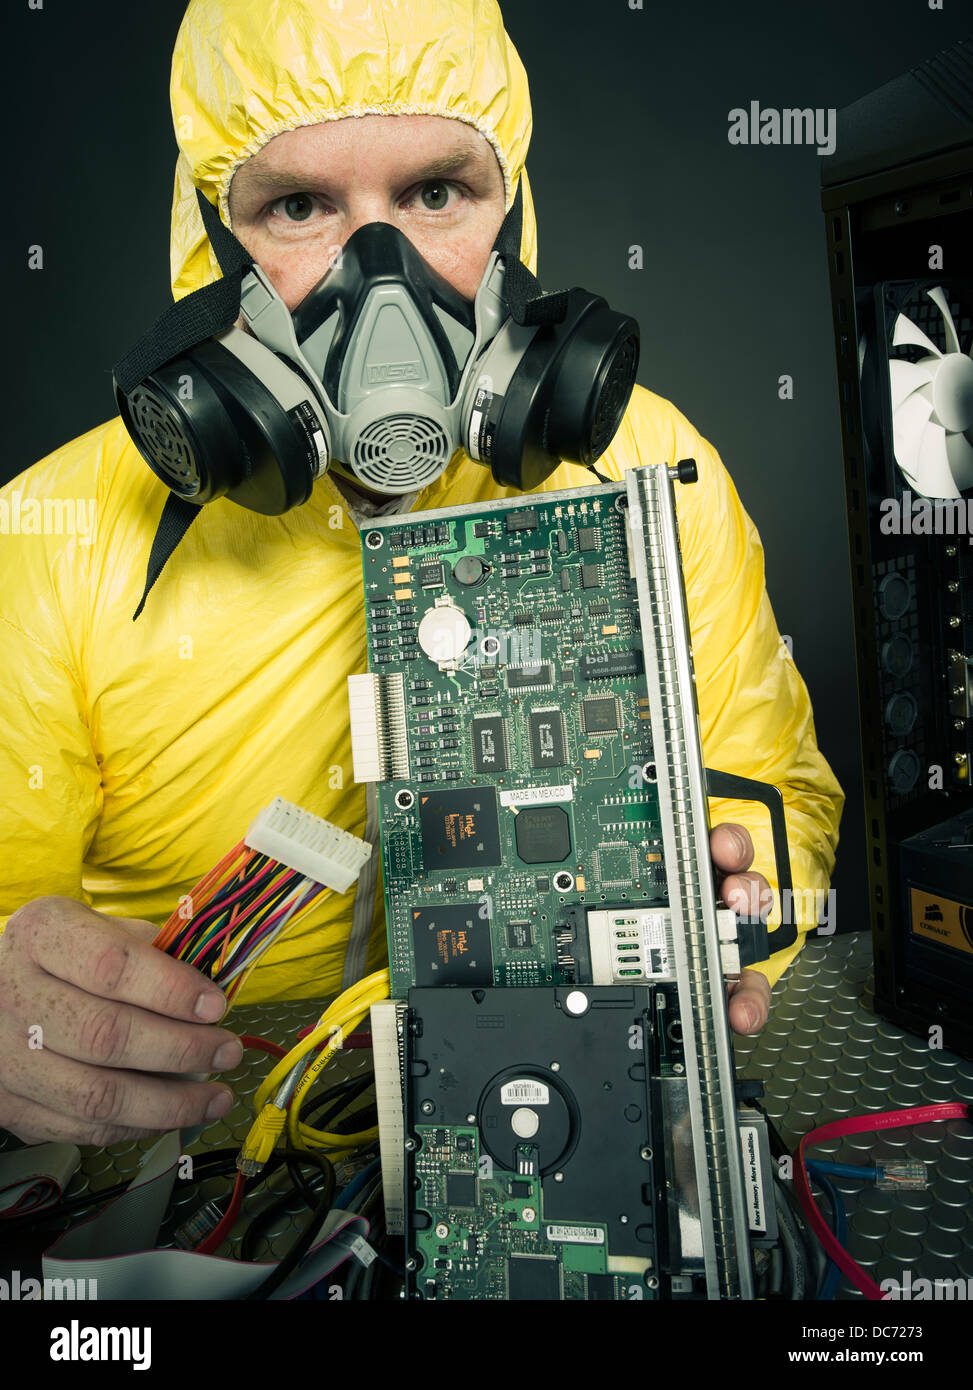 Man dealing with computer virus (figurative) or toxic chemicals heavy metals with computer and various hardware - Stock Image